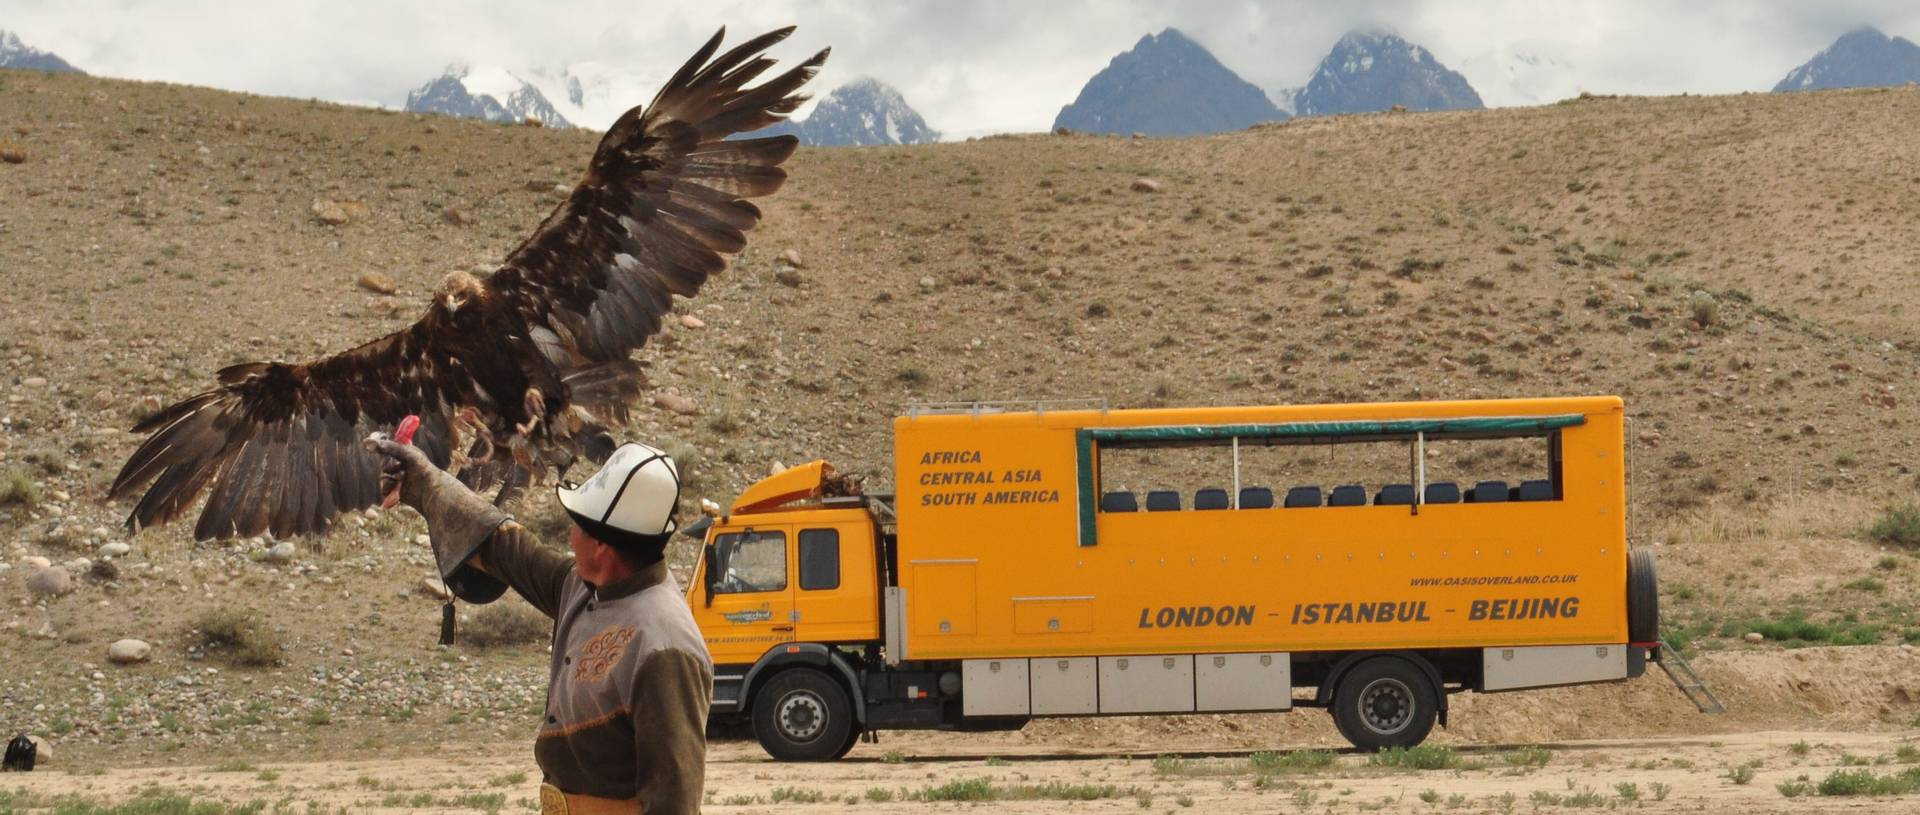 Hunting Display With An Eagle and Oasis truck, Kyrgyzstan